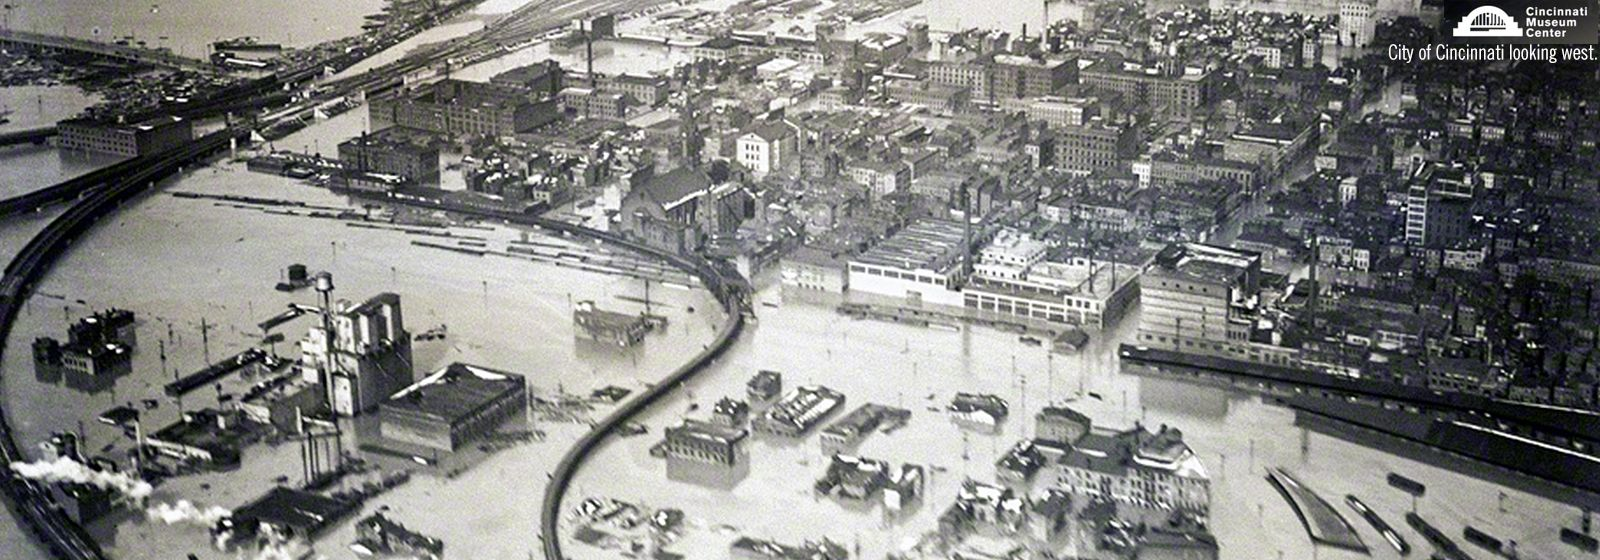 Workers powered hope and lights during 1937 flood